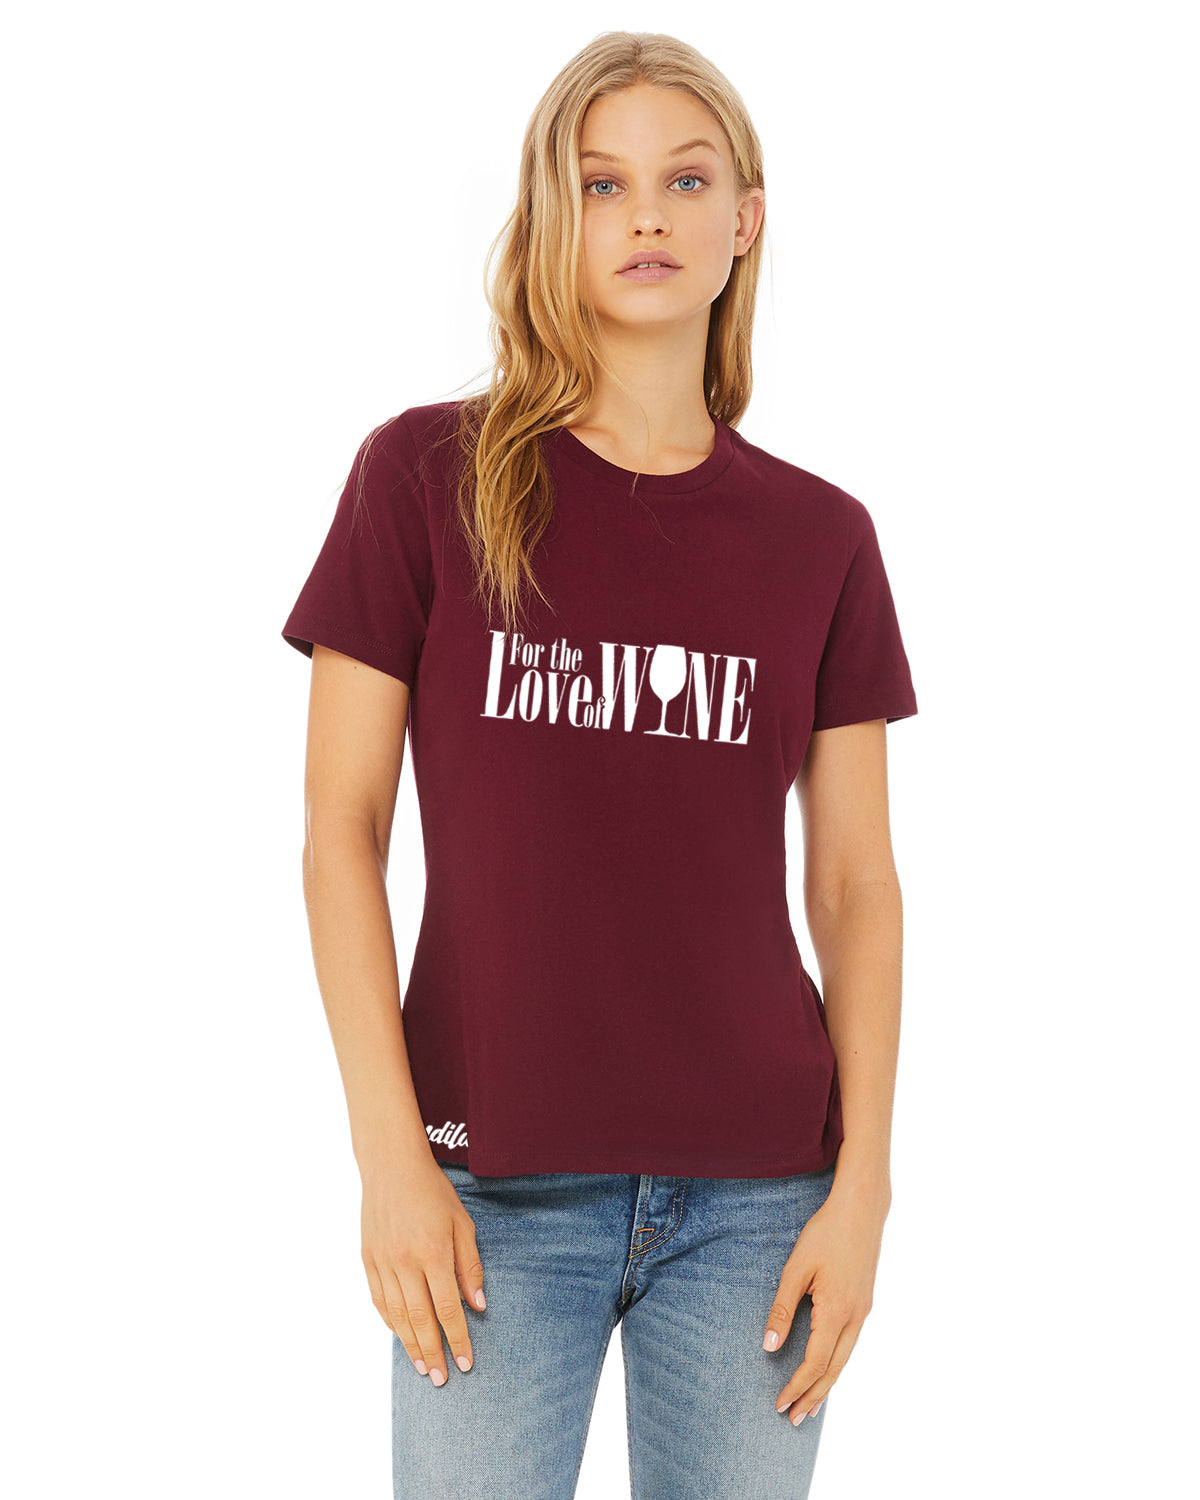 For the Love of Wine Tee (Adult)